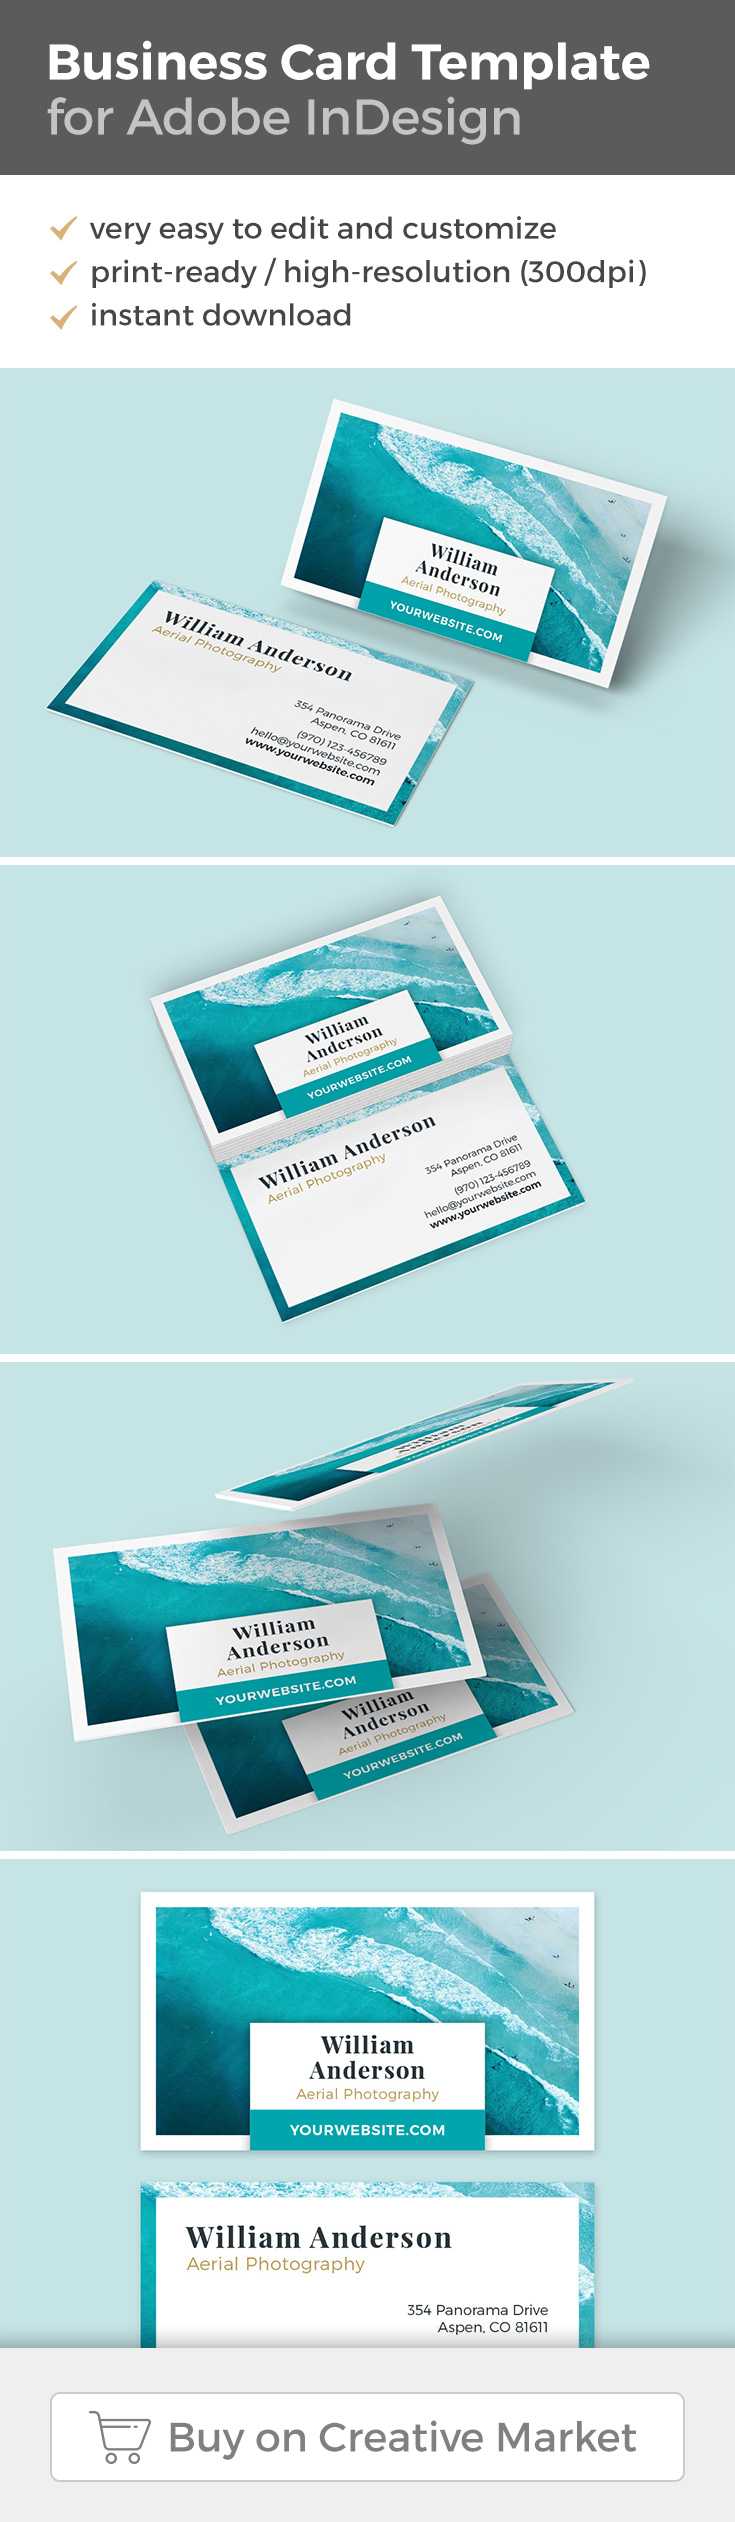 Beautiful Business Card Template for Adobe InDesign with an ocean     Beautiful Business Card Template for Adobe InDesign with an ocean theme